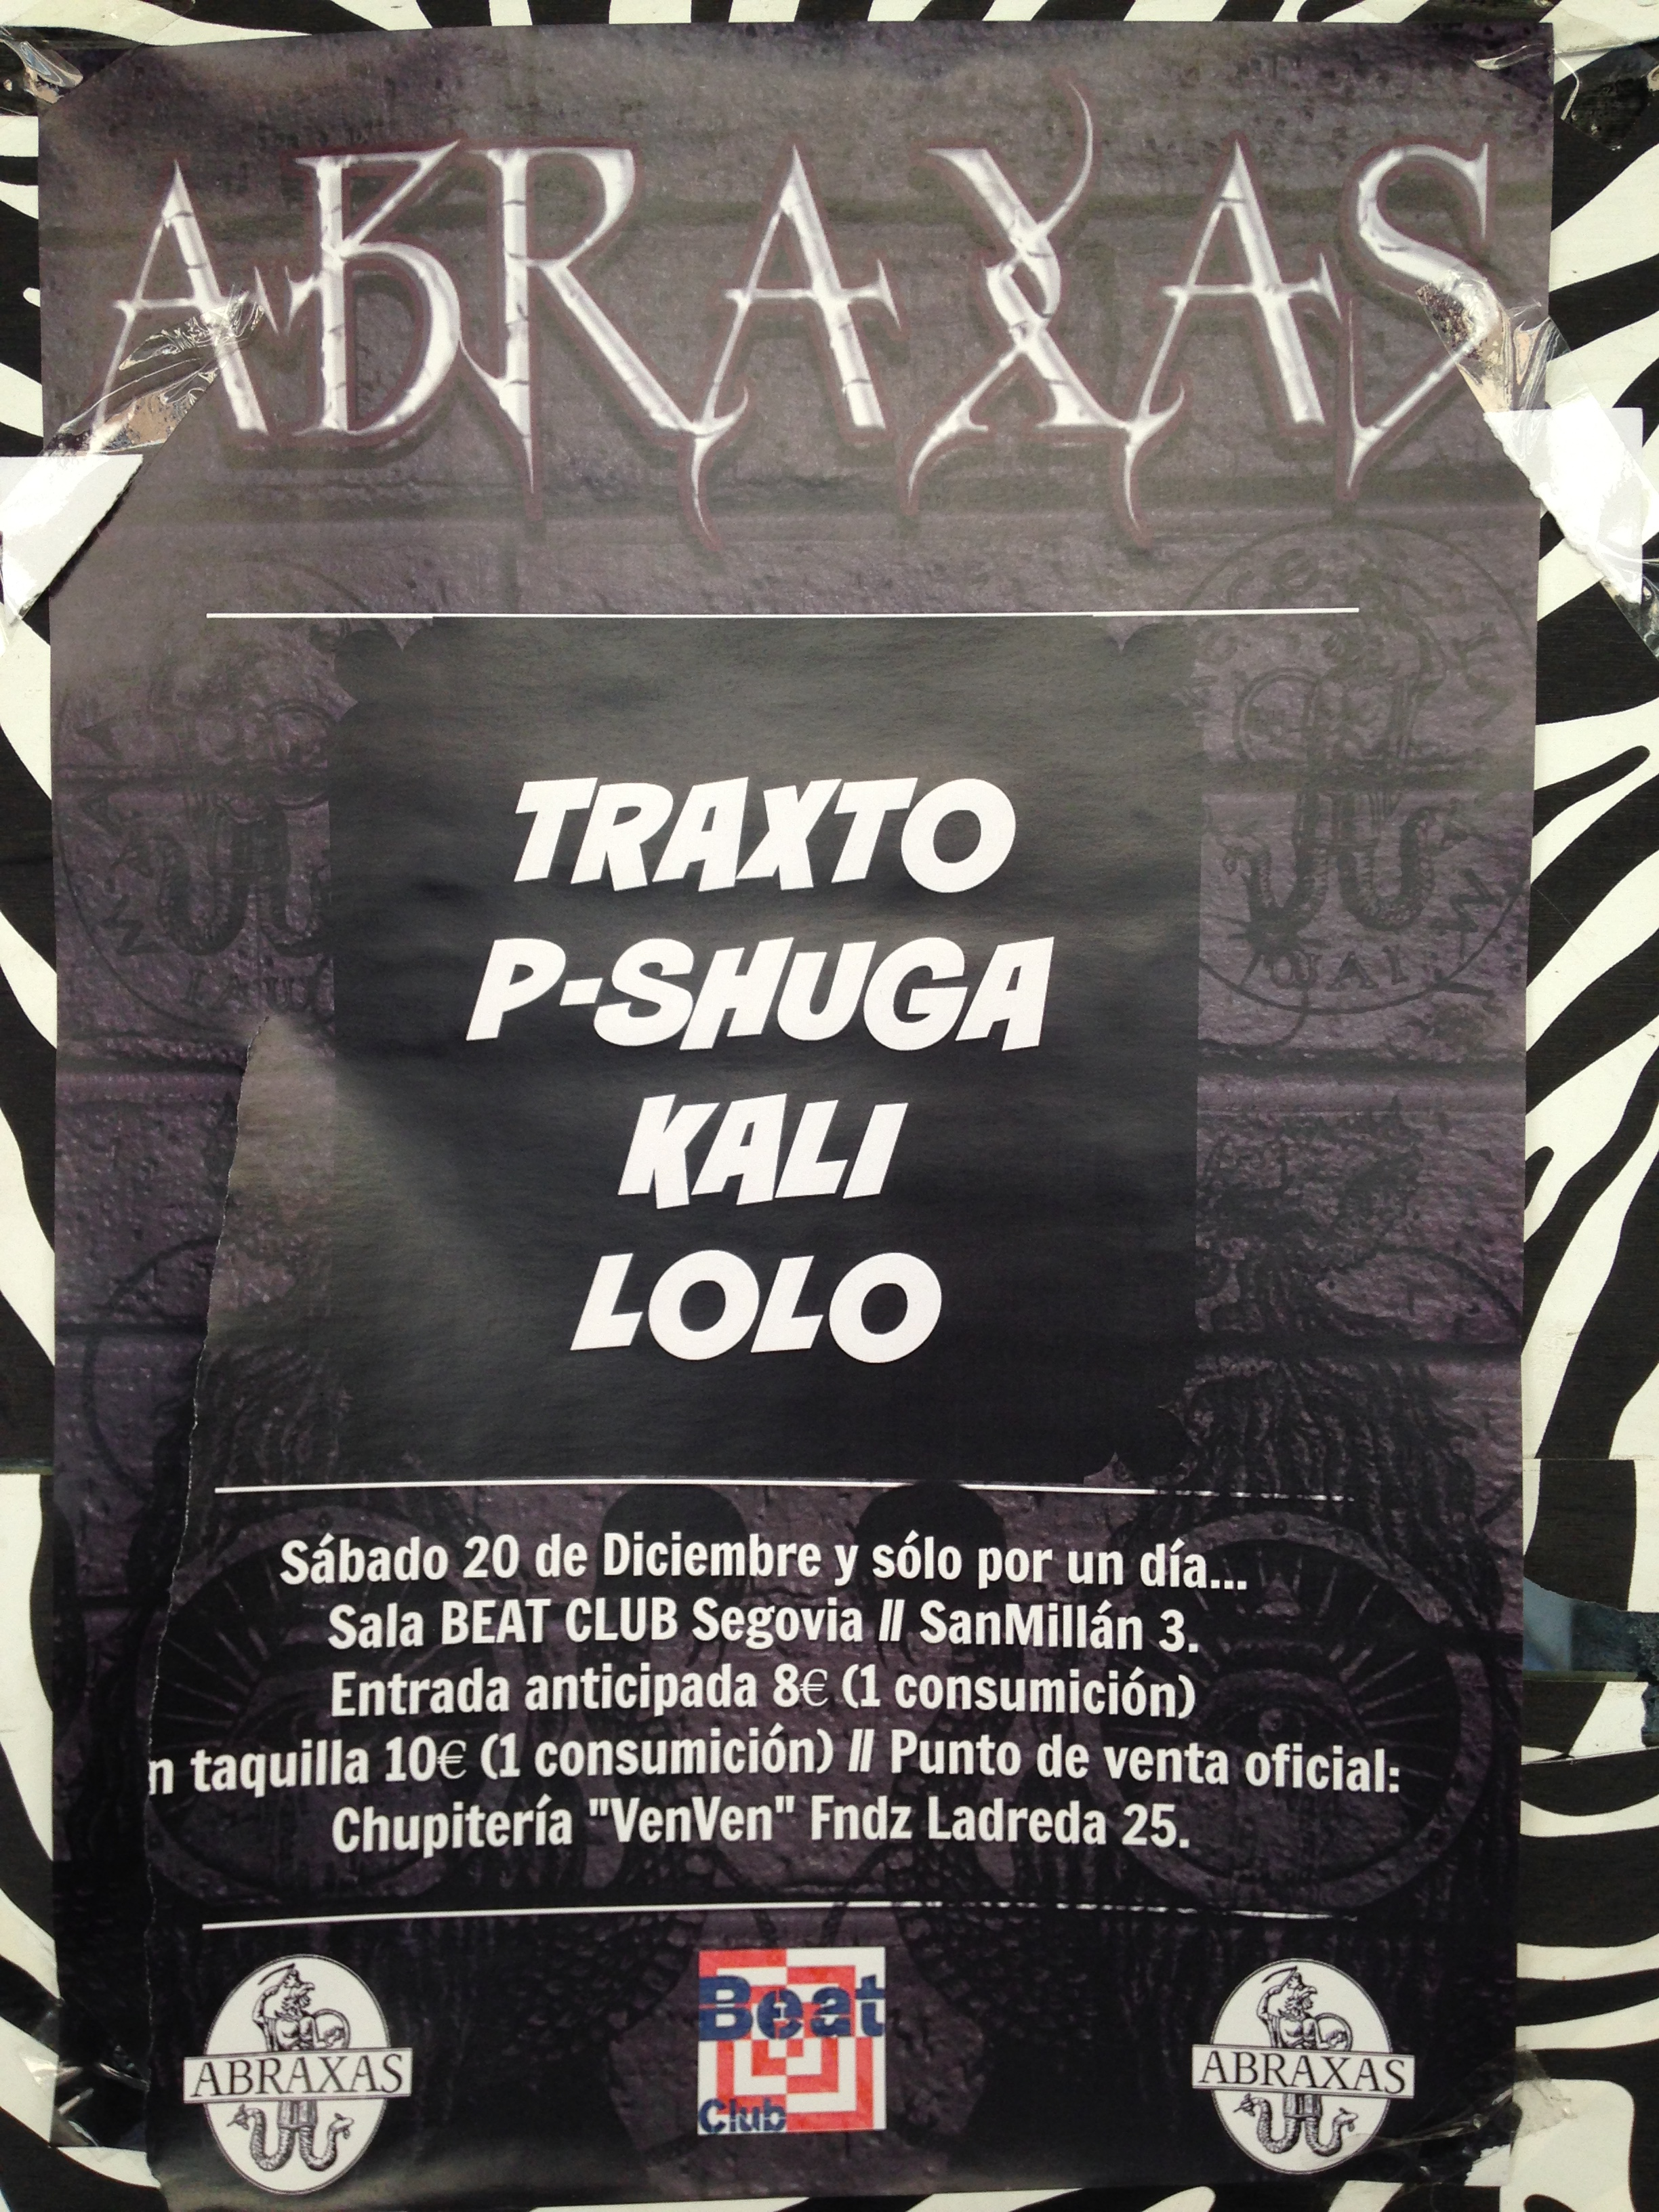 A remenber party as a tribute to the Abraxas club founded in 1993.